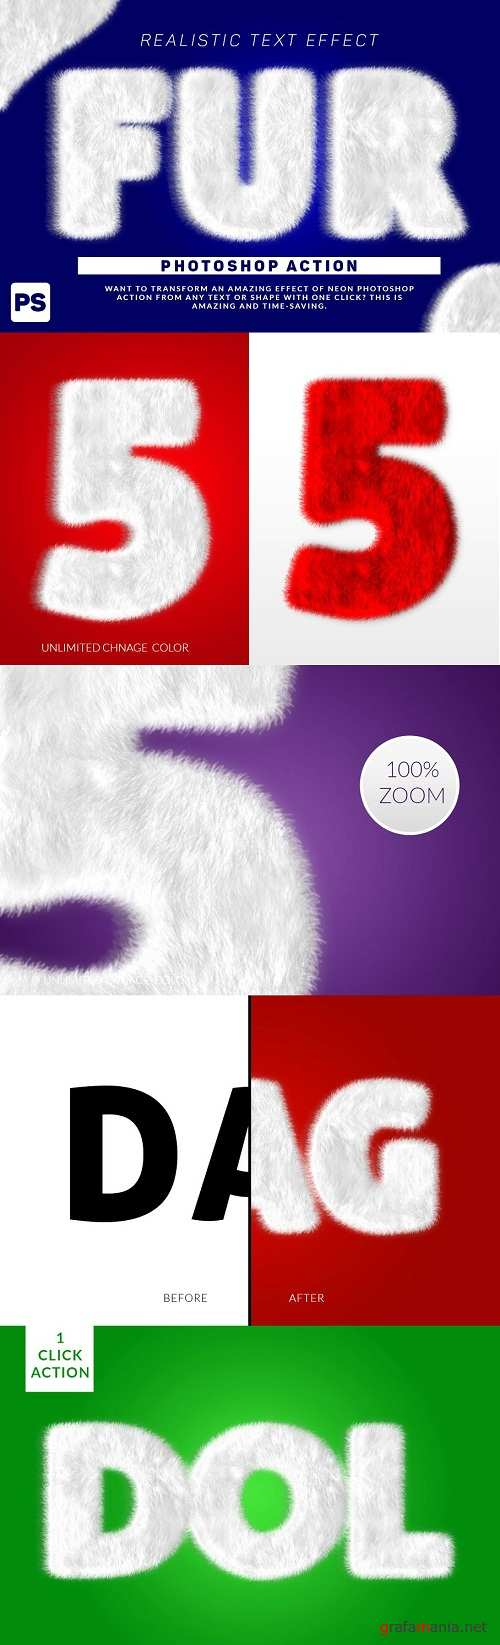 Wool Text Effect Photoshop Action 3165755